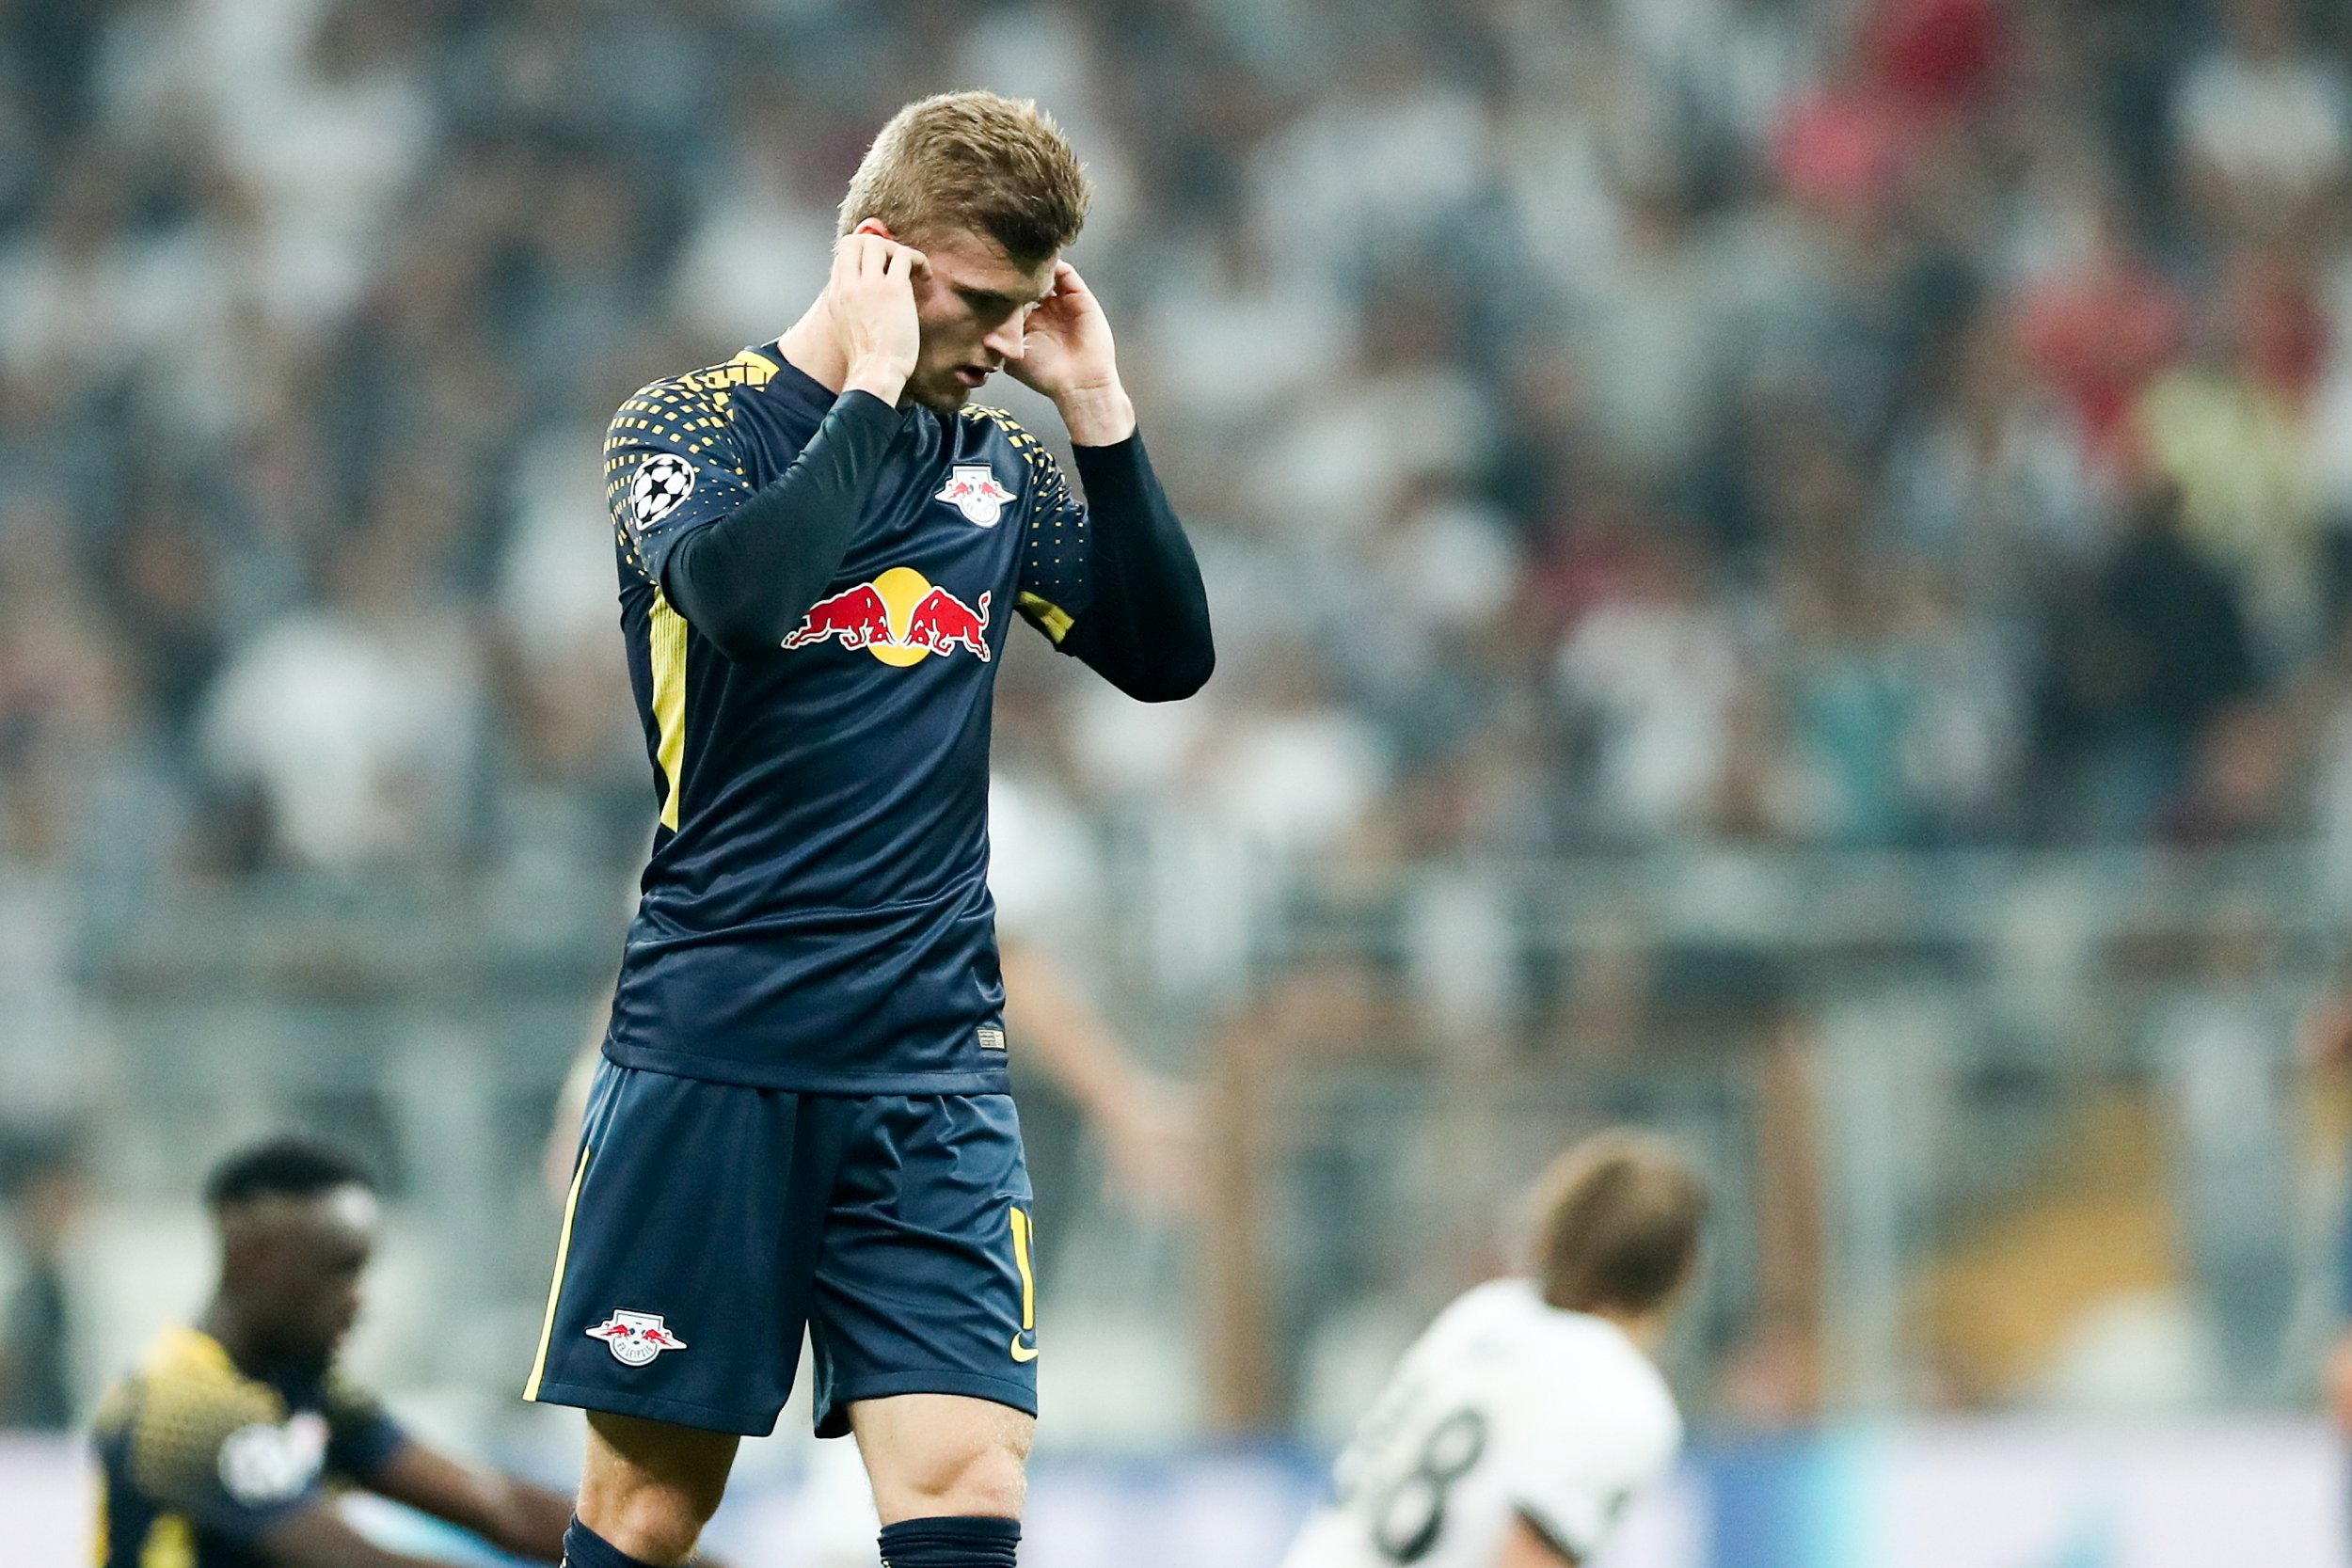 Leipzig's Timo Werner forced to ask for substitution in Champions League match due to loud Besiktas fans